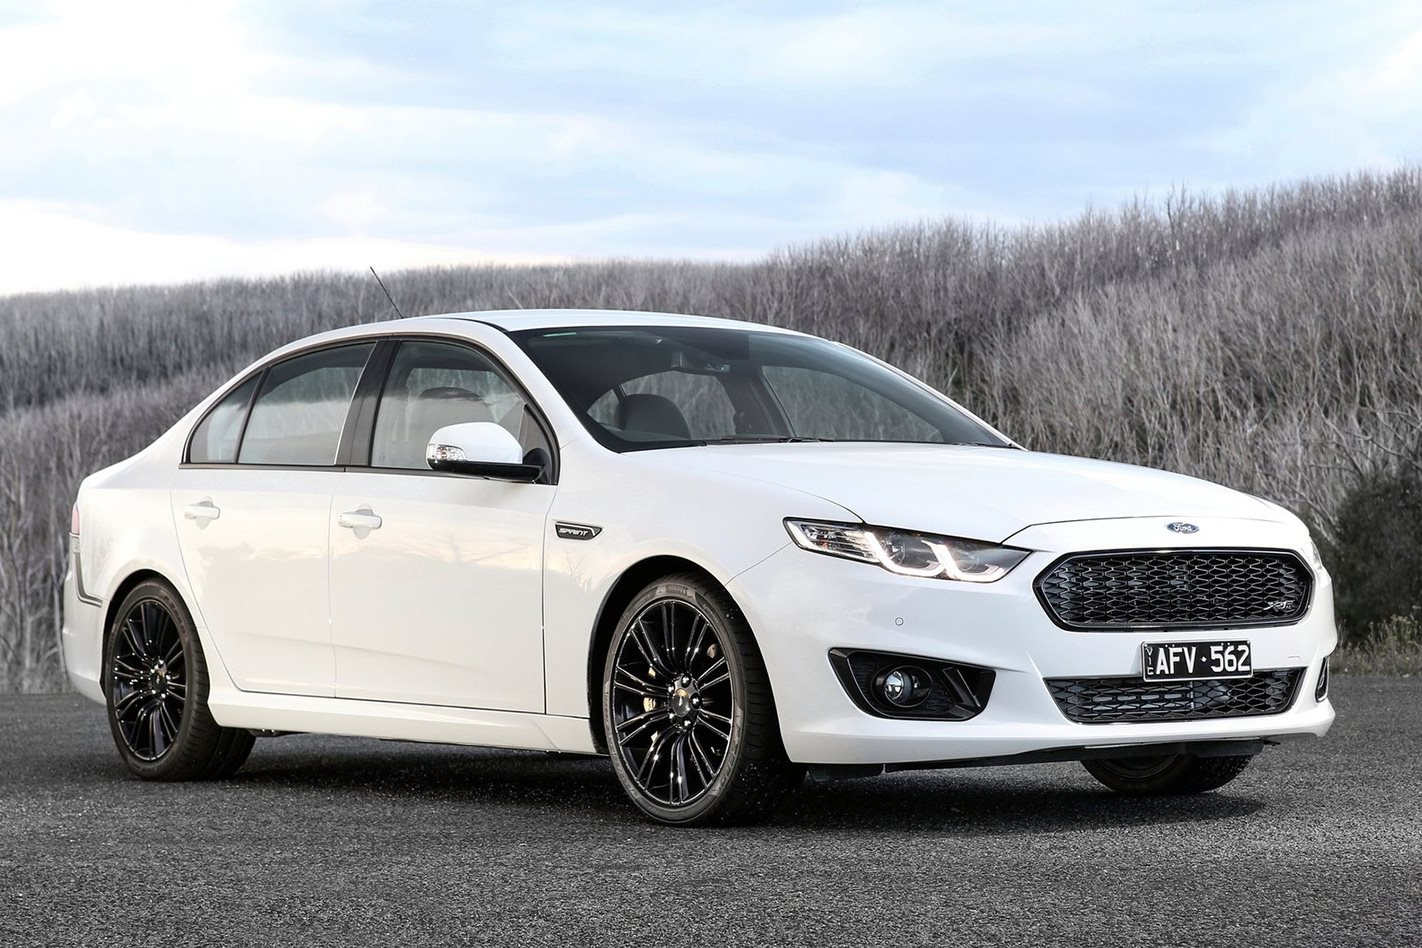 2016-Ford-Falcon-XR6T-Sprint-Turbo.jpg